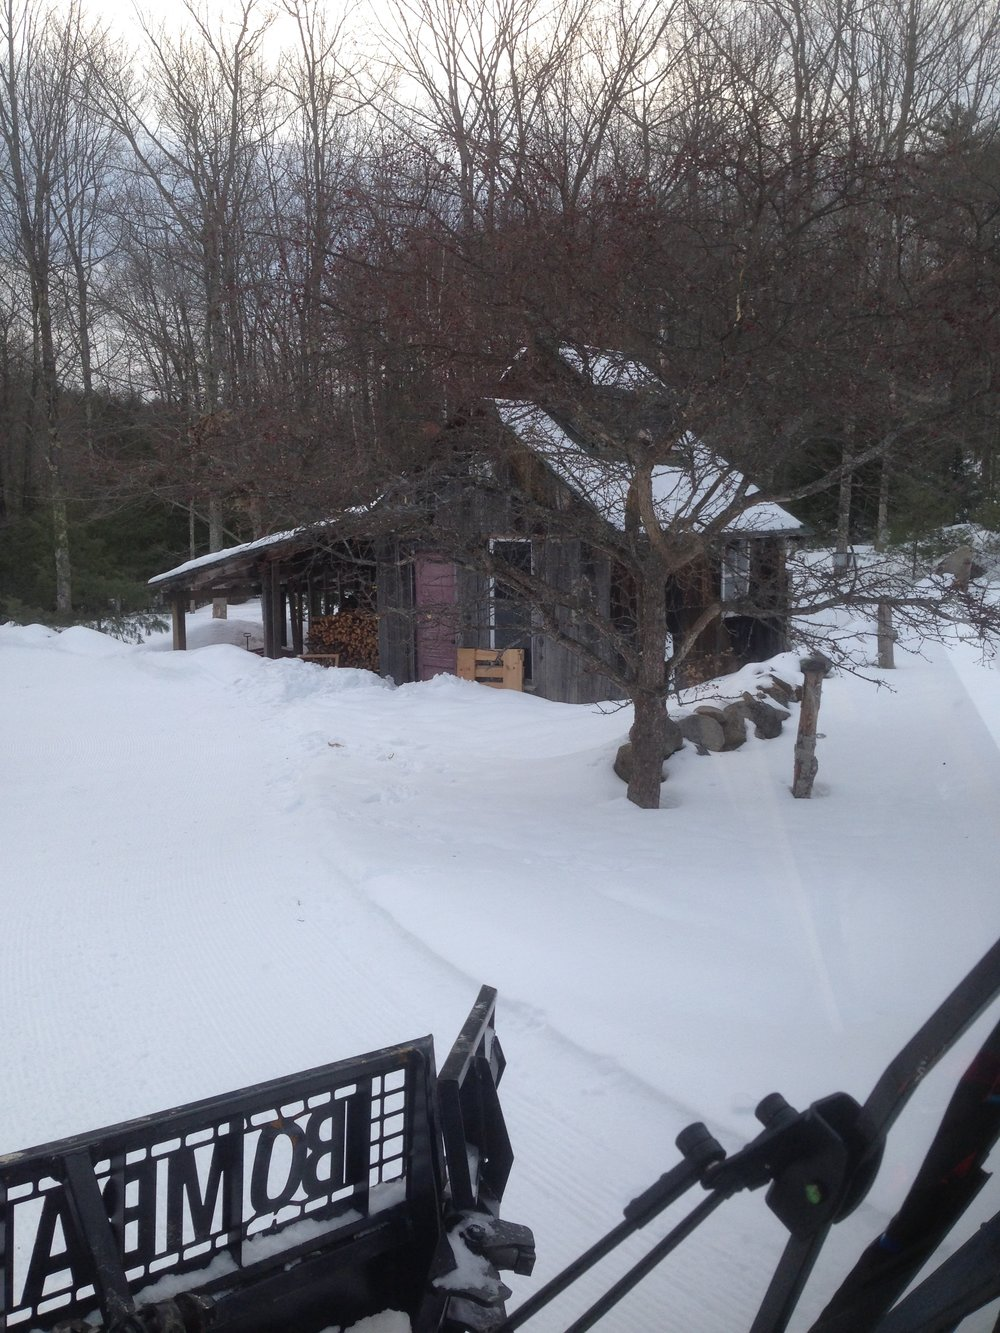 Bean's Sugar Shack ski or snowshoe accessible from the Abenaki Loop just follow the signs.